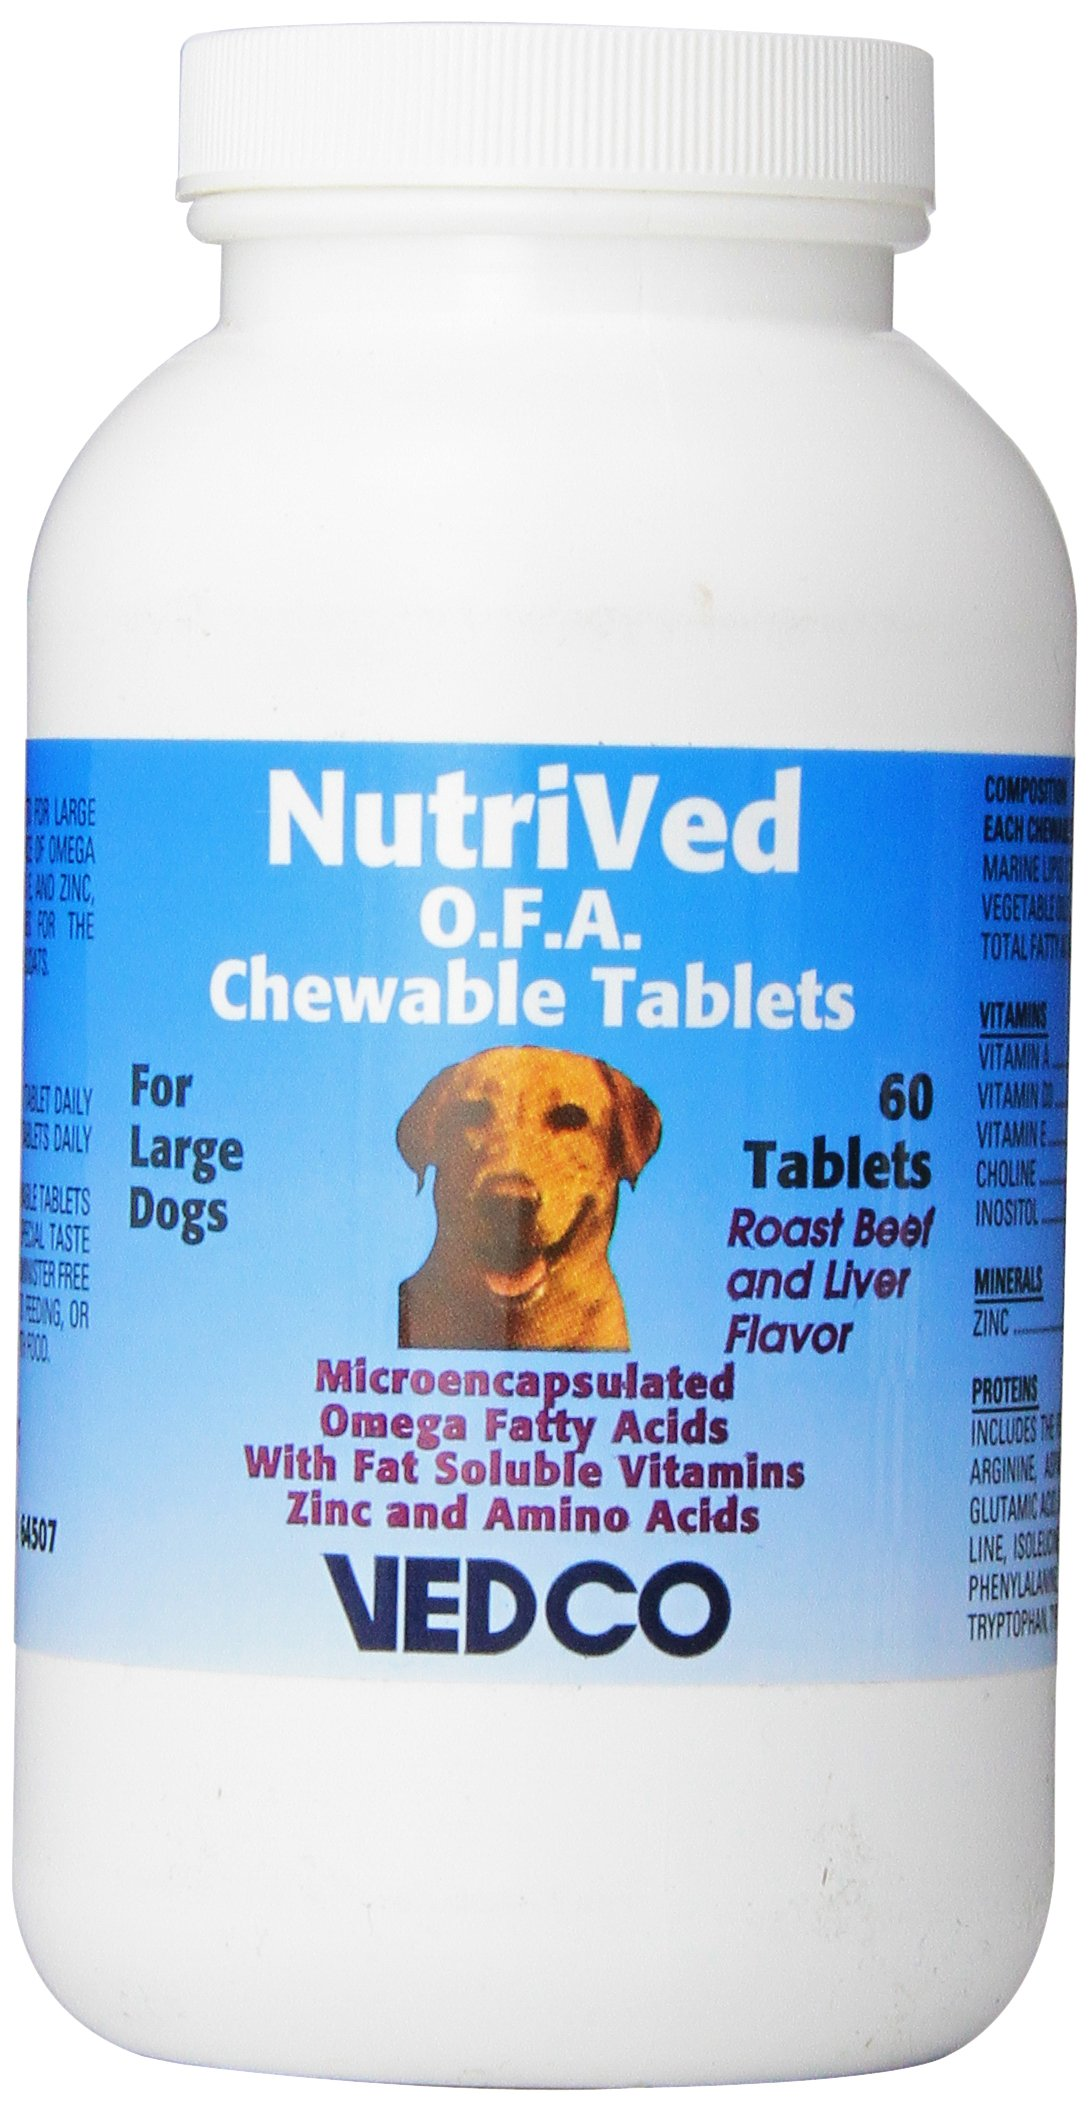 Vedco 60 Count Nutrived O.F.A. Chewable Tablets for Large Dogs